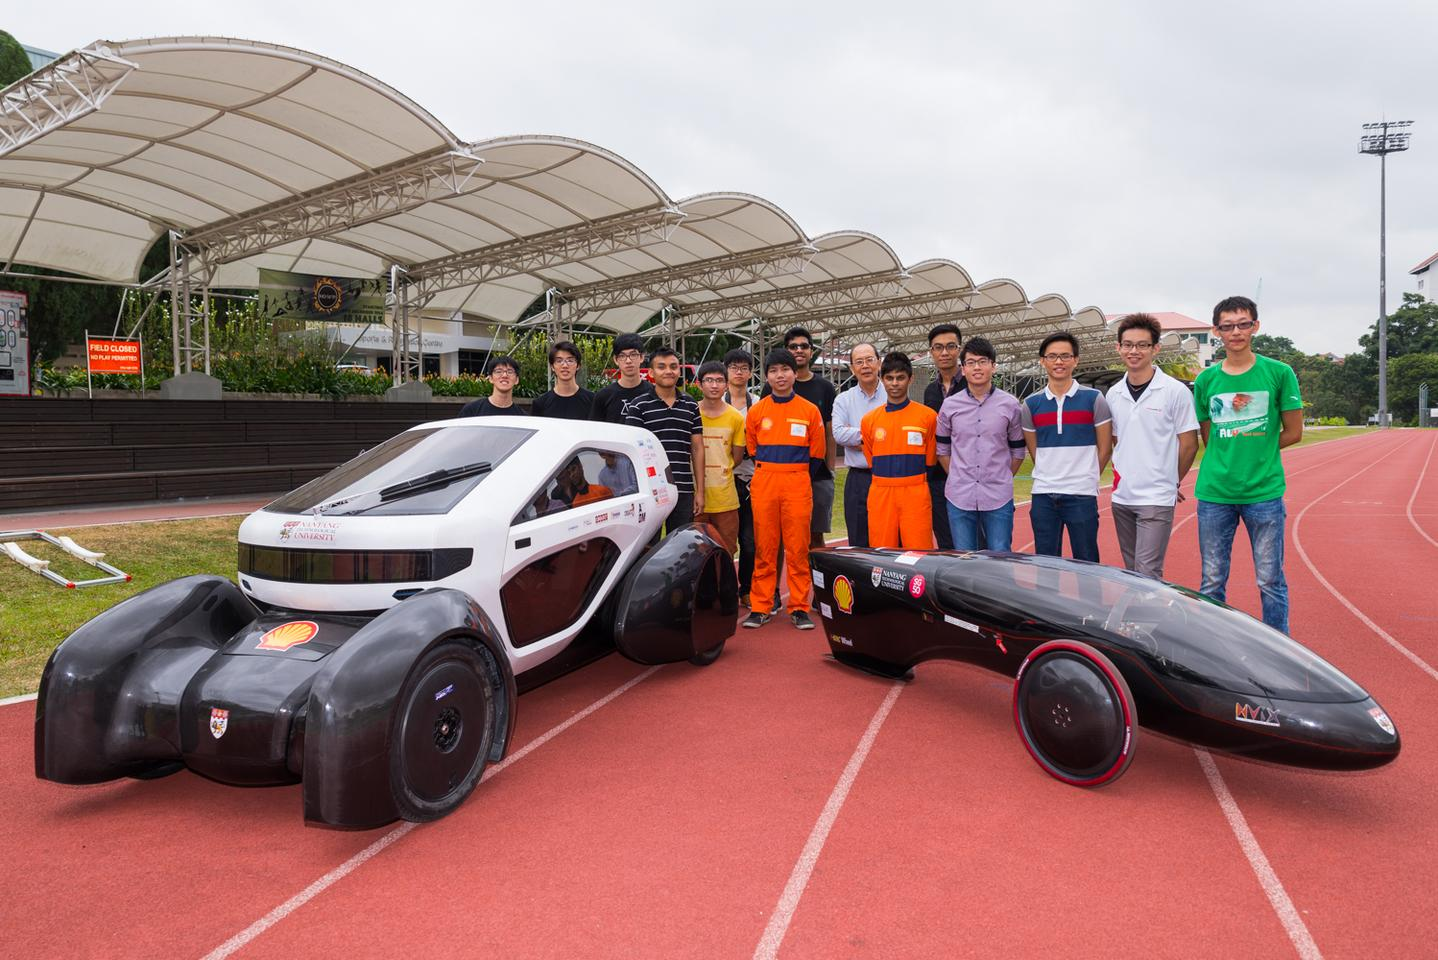 The NV 8 weighs 120 kg (265 lb) without a driver, while the NV 9 weighs 42 kg (93 lb) (Photo: NTU)